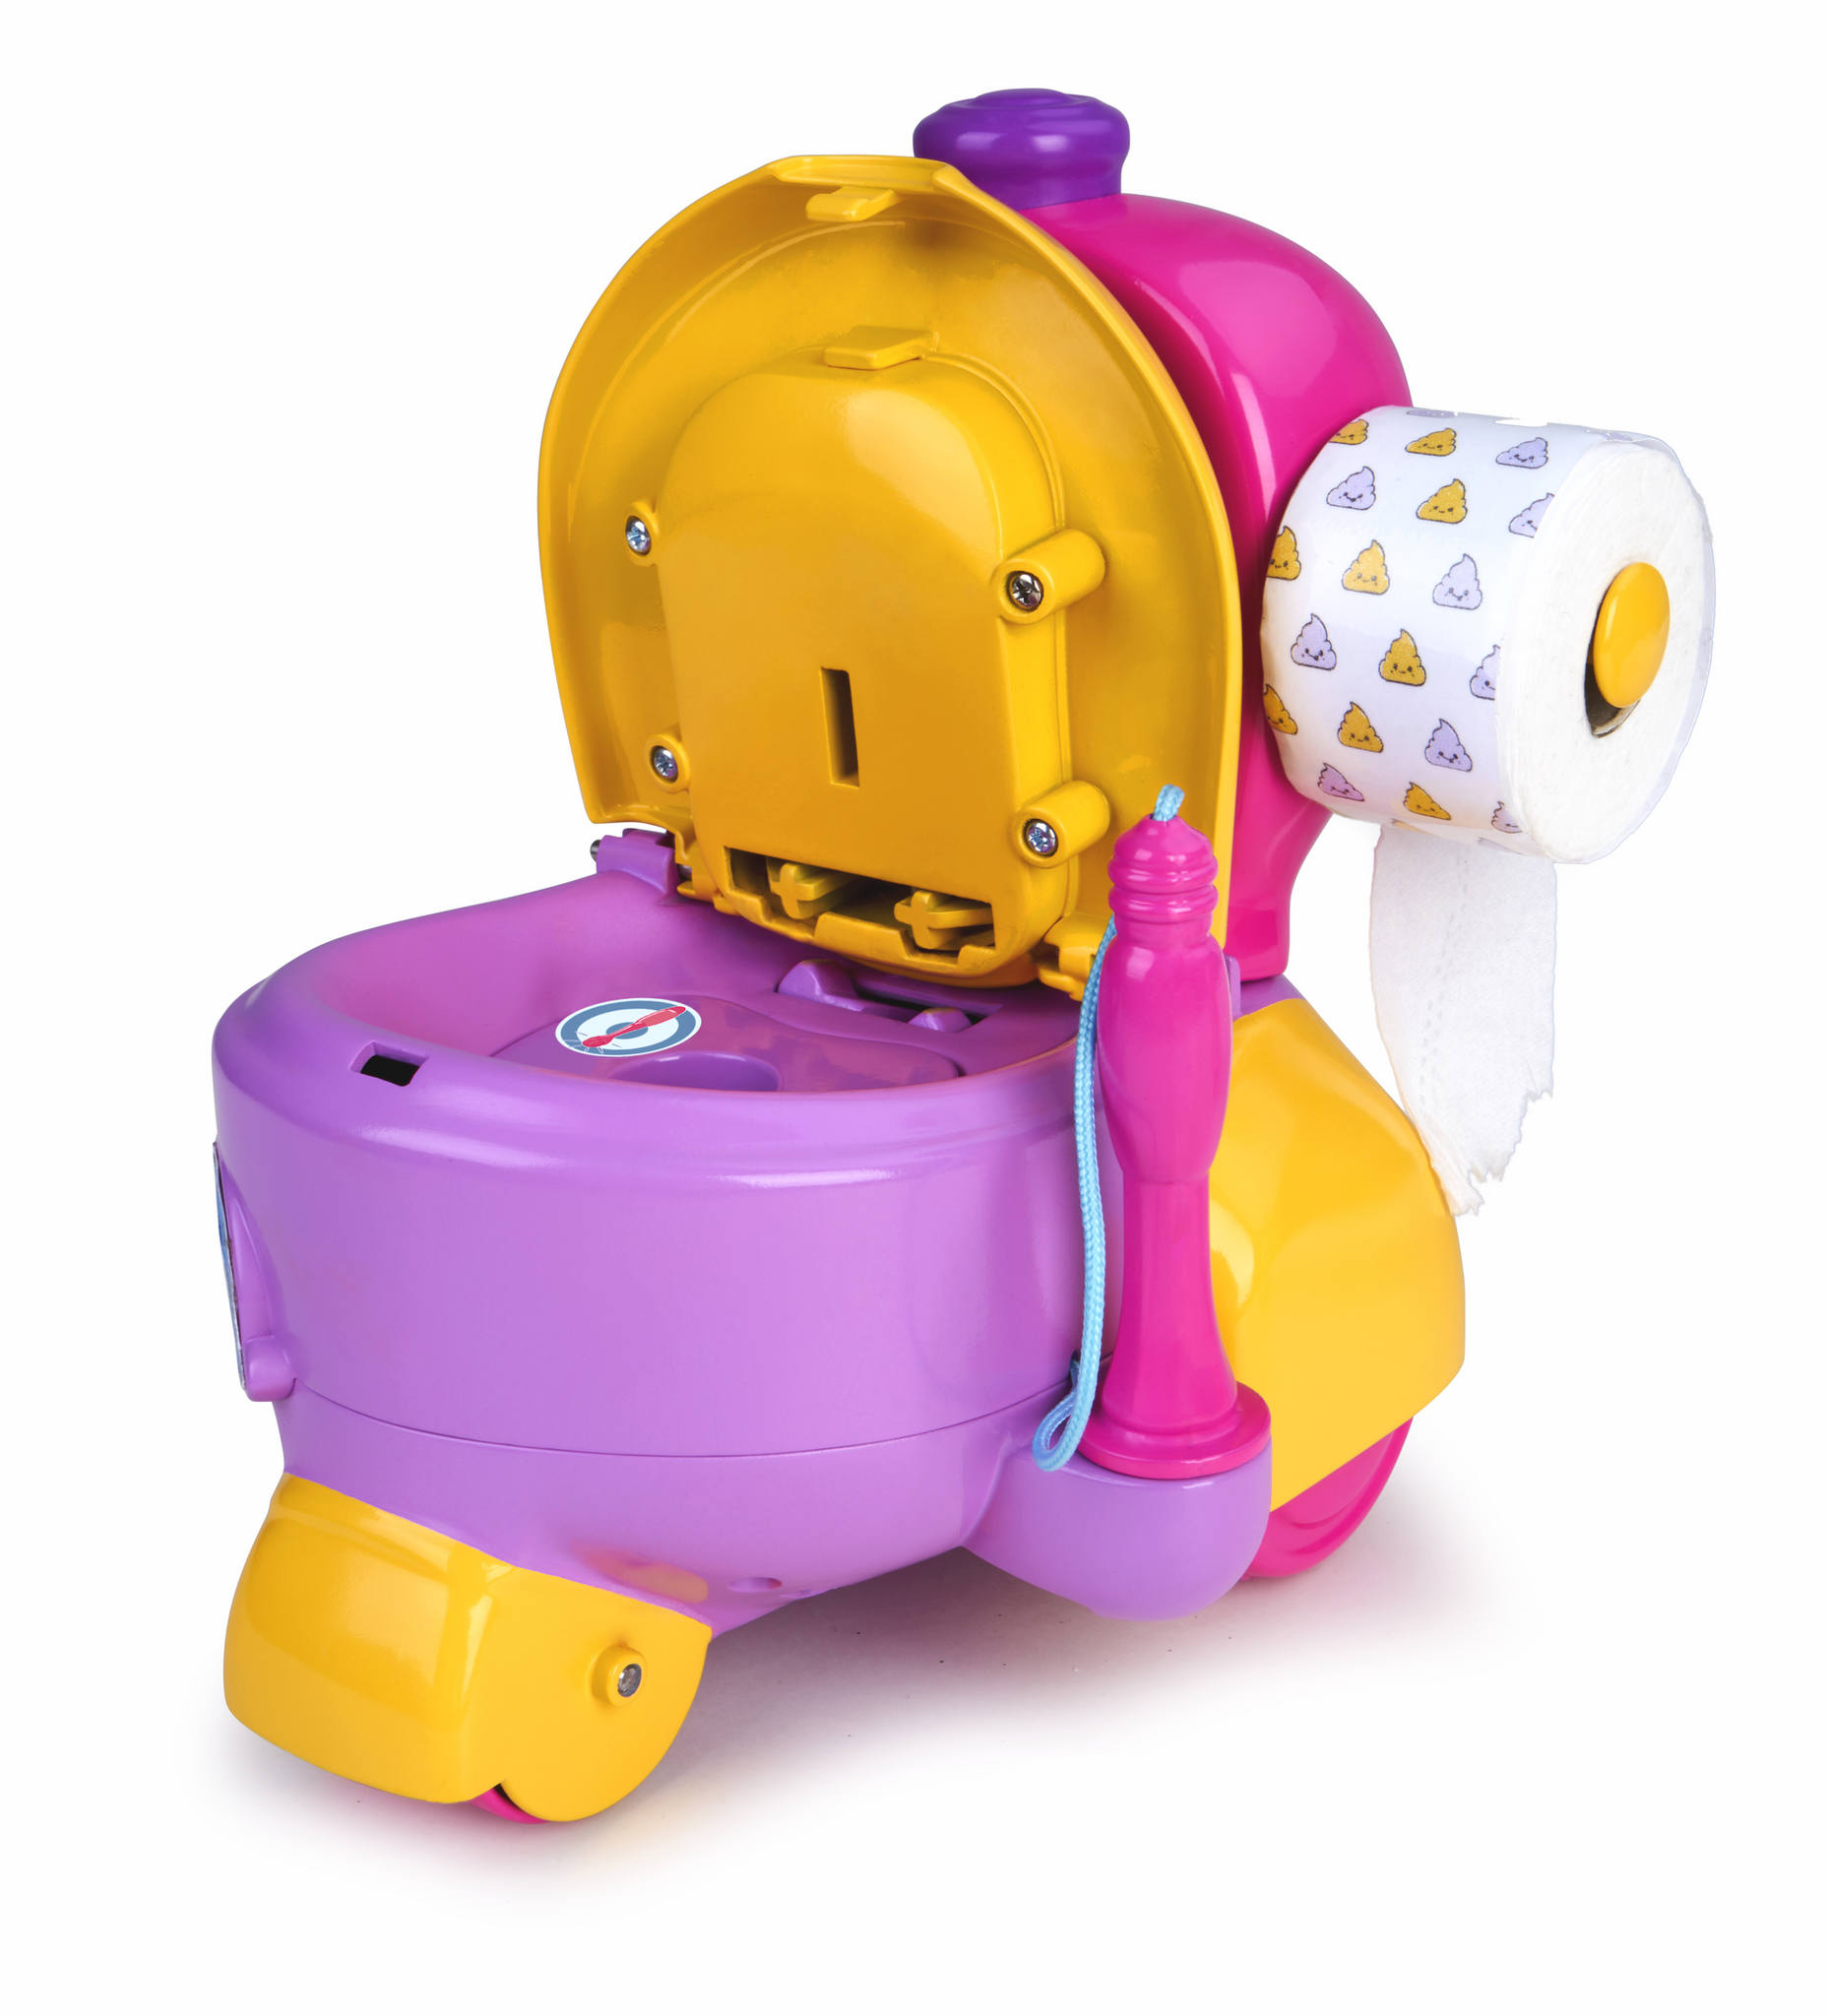 THE BELLIES POTTY CAR 700015140 - N7119